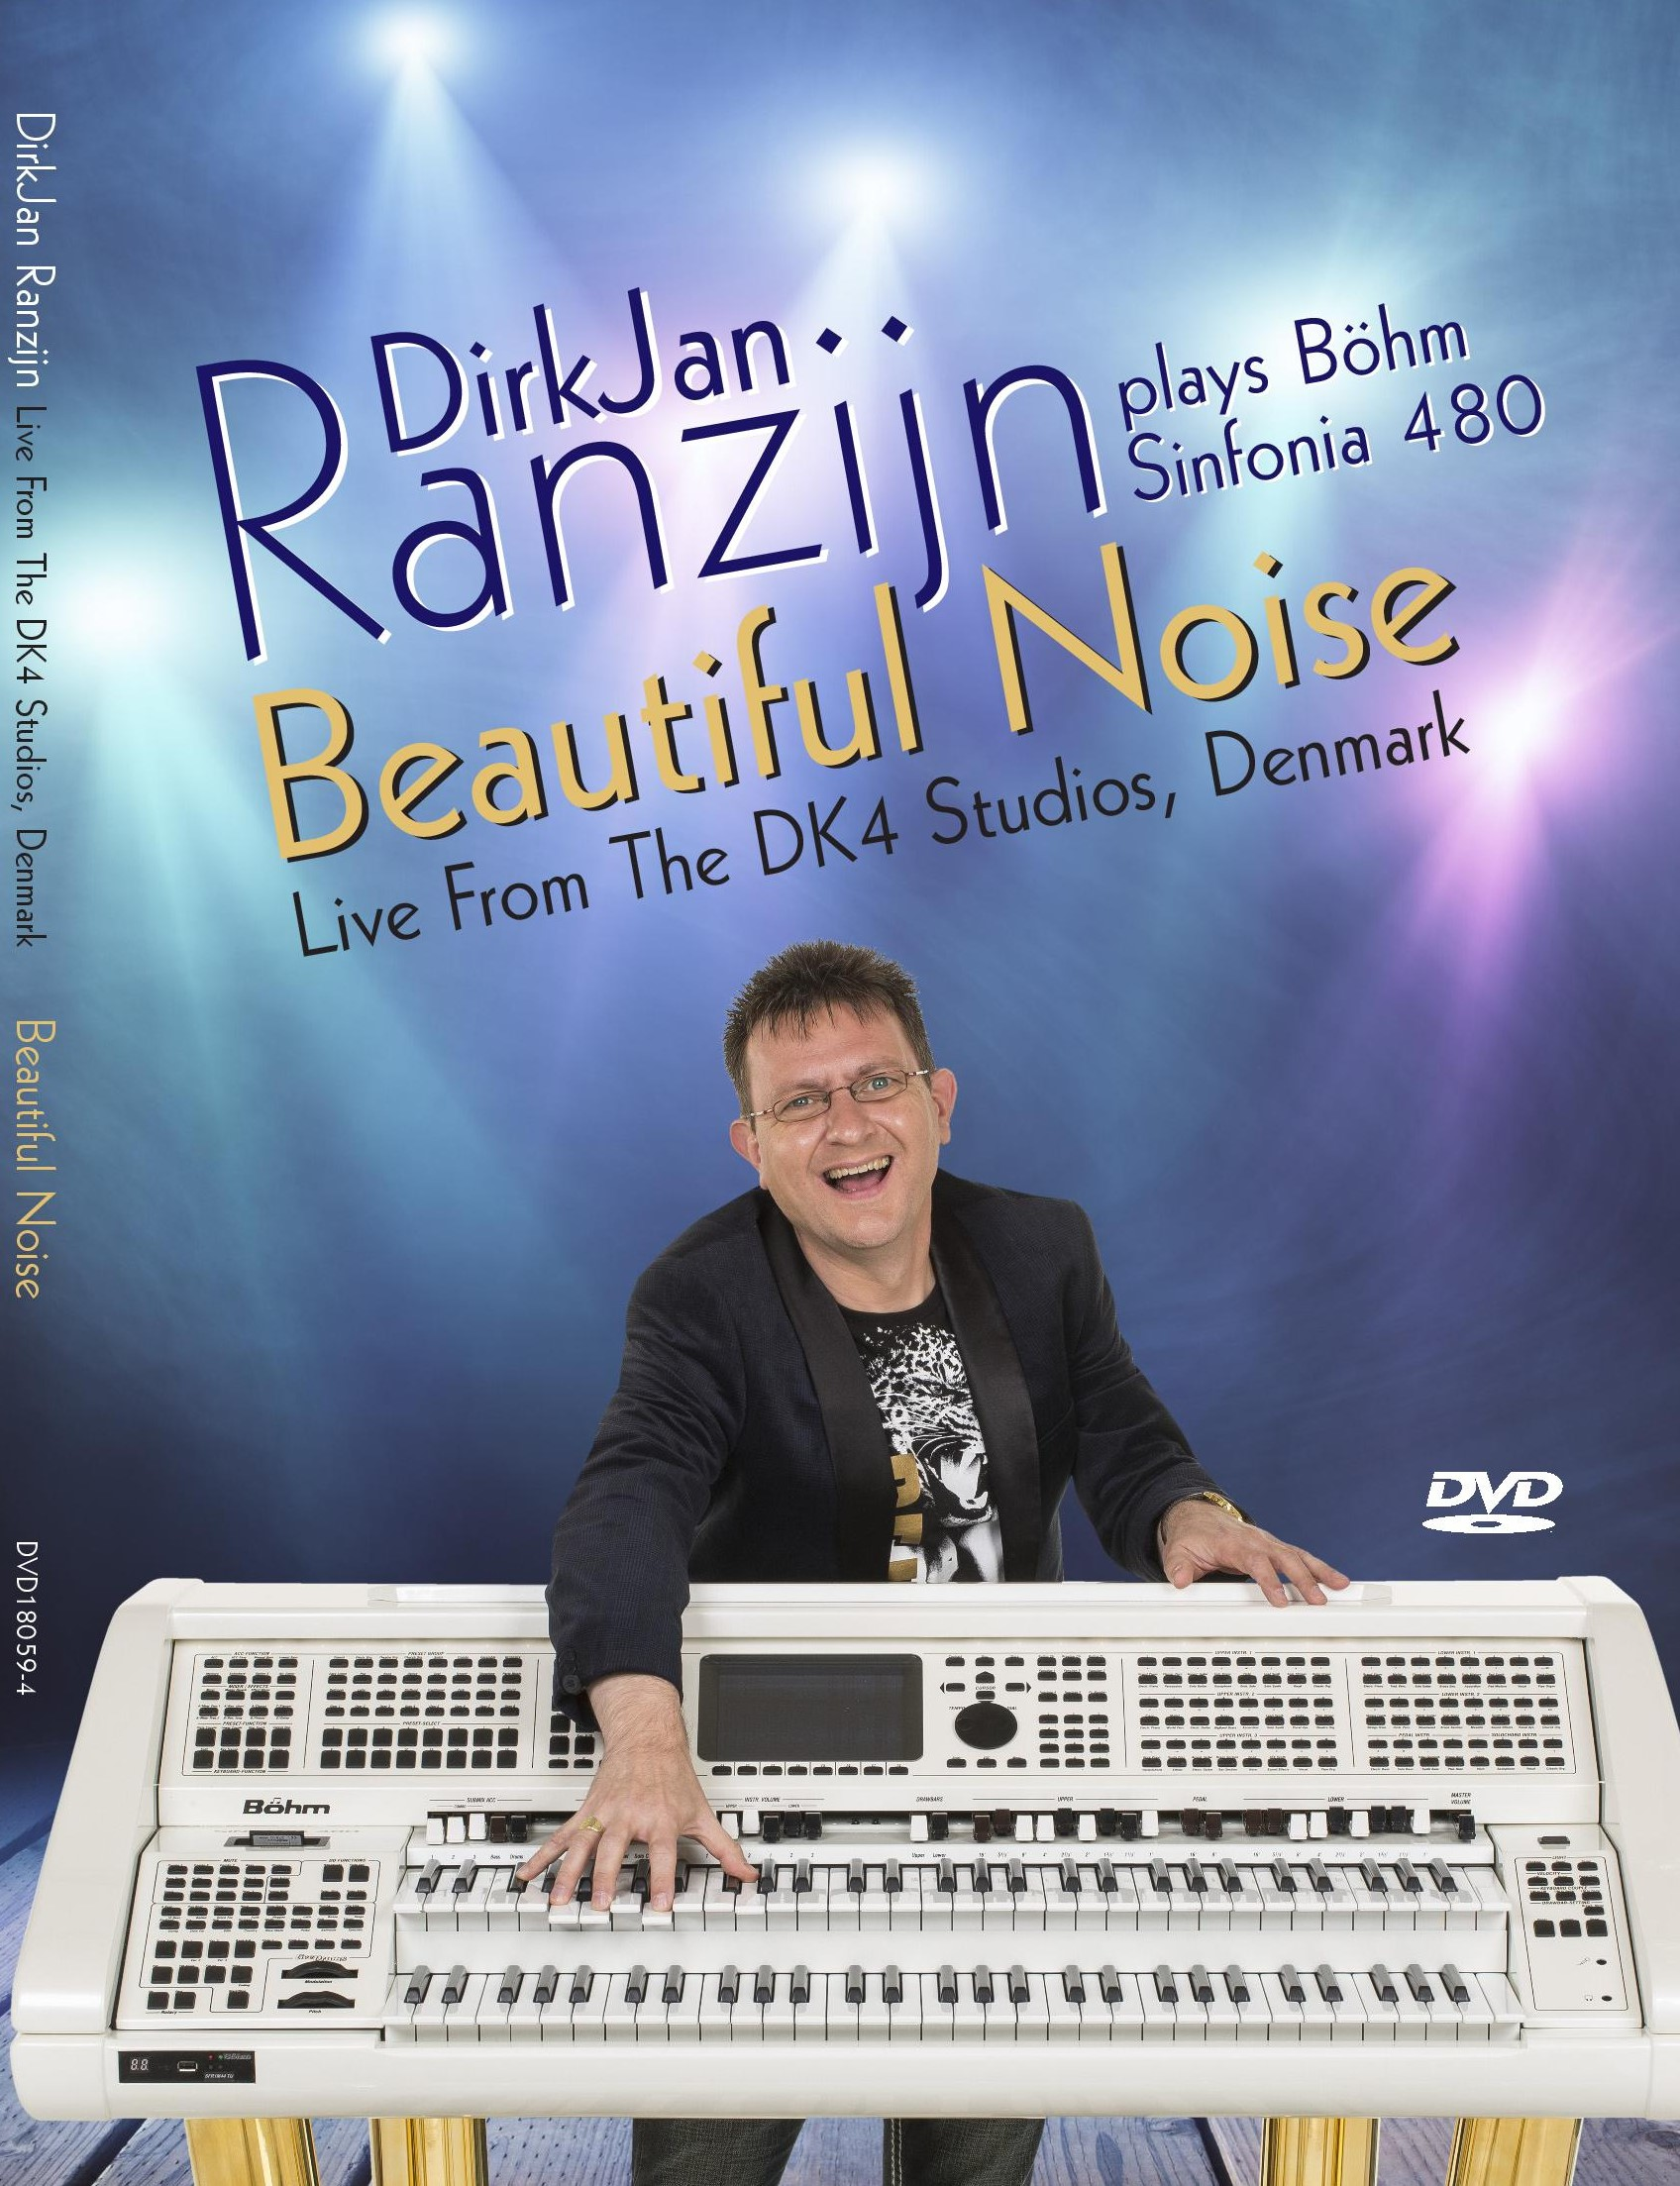 DirkJan Ranzijn Beatuful Noise